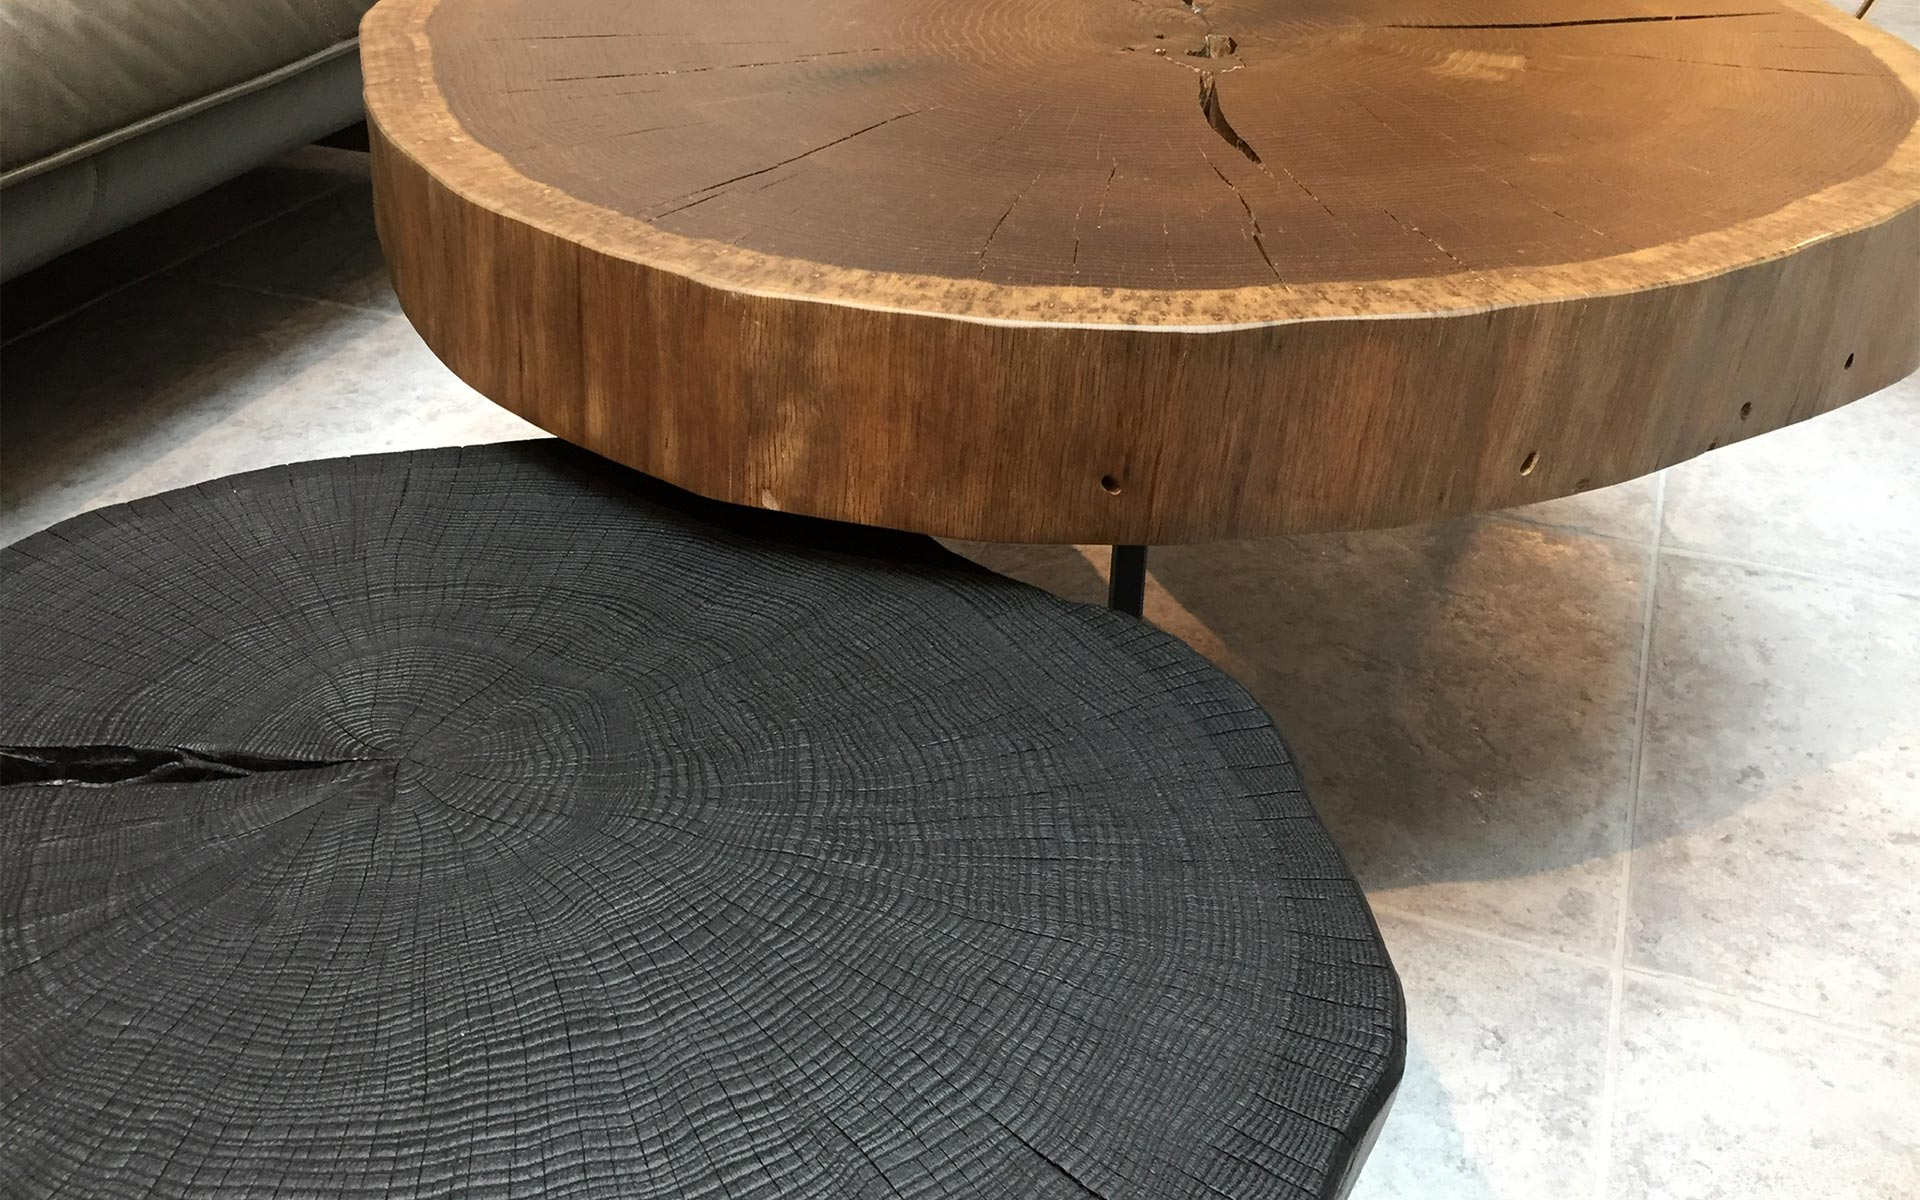 Janua Stomp Coffeetable - Interiordesign steidten+ Berlin